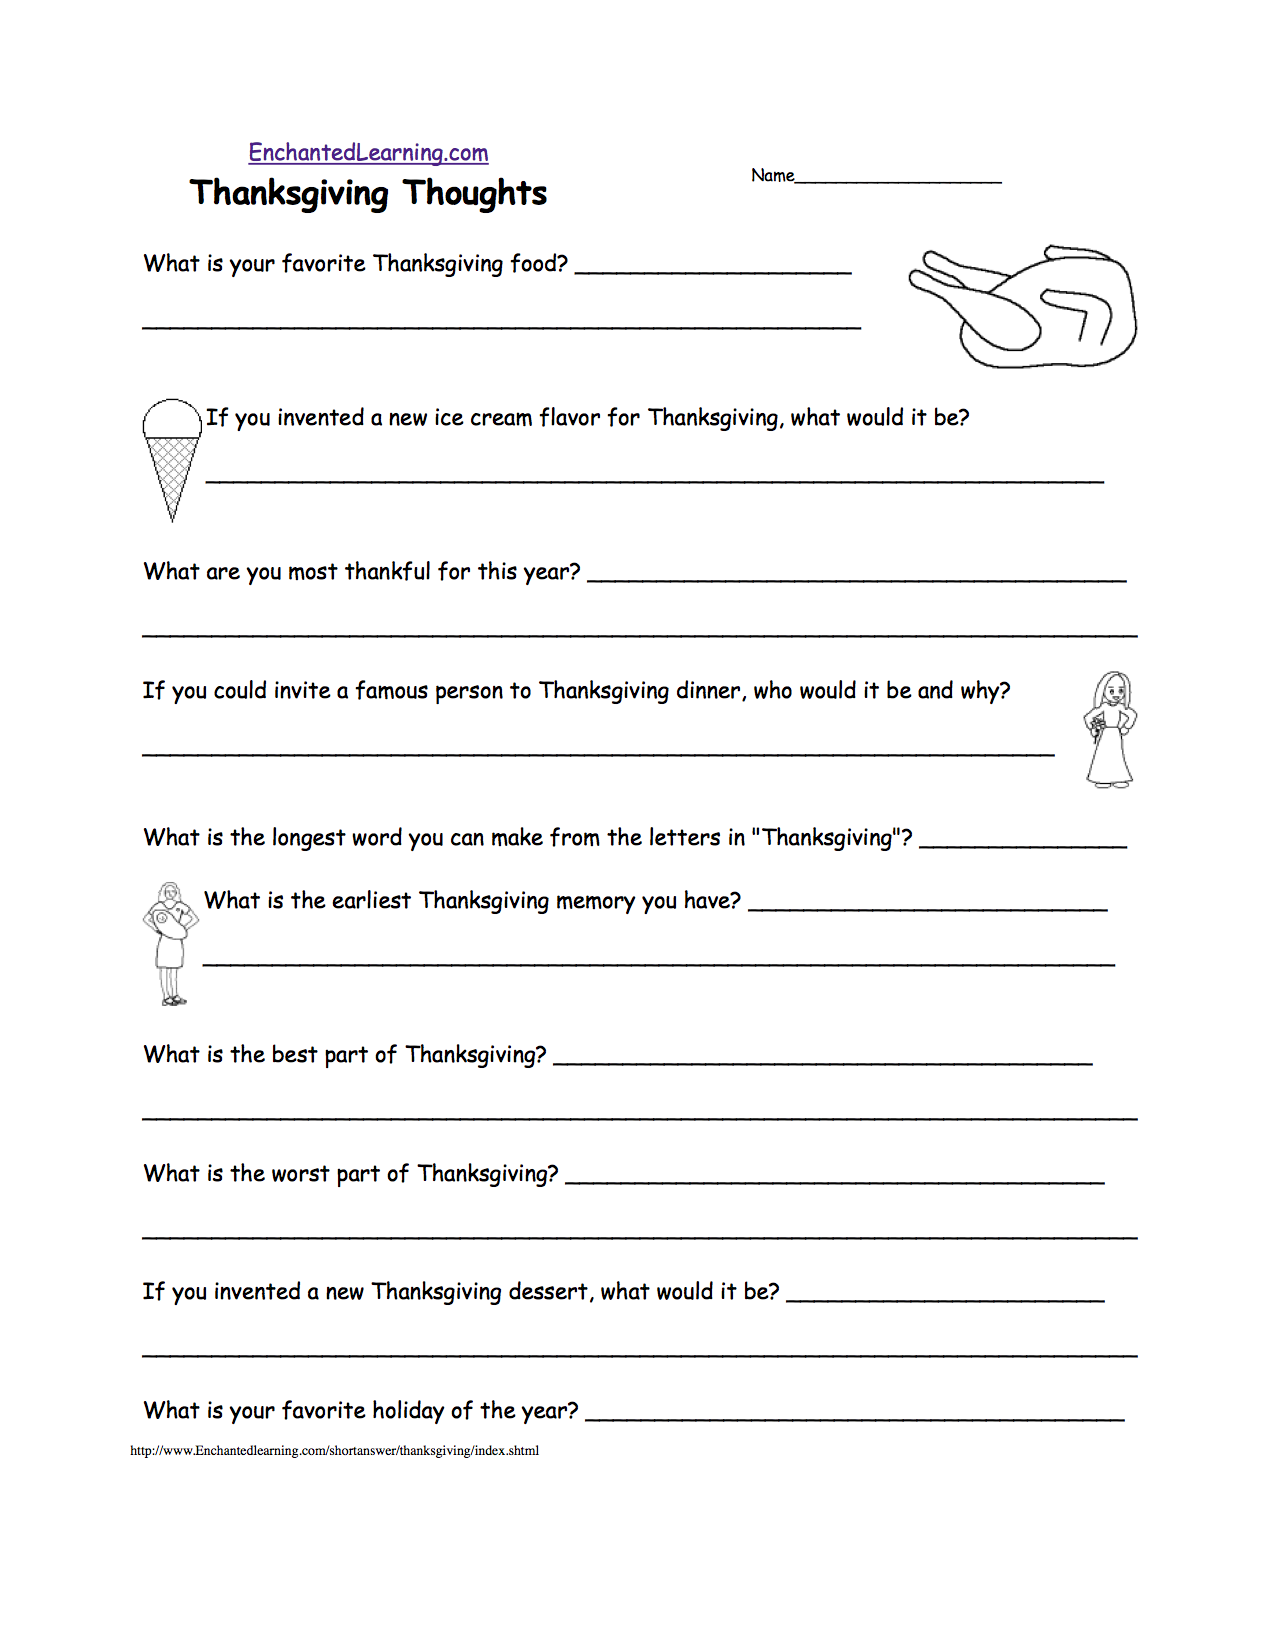 worksheet Teach Your Child To Read In 100 Easy Lessons Worksheets thanksgiving crafts worksheets and activities enchantedlearning com thanksgiving